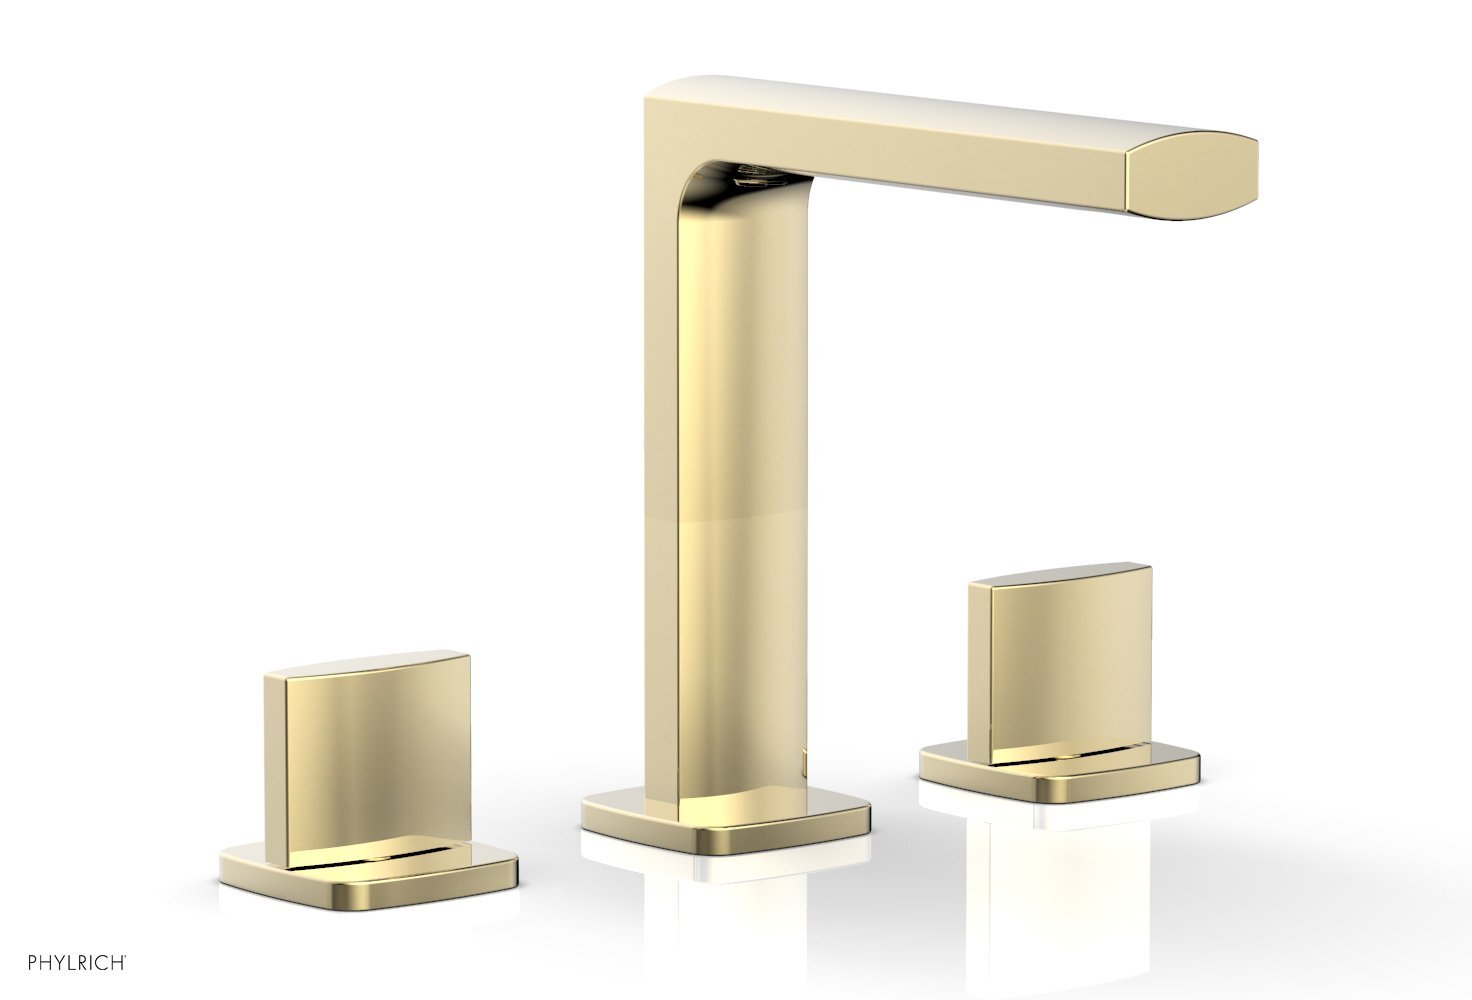 Phylrich 181-01-03U RADI Widespread Faucet - Blade Handle High Spout - Polished Brass Uncoated